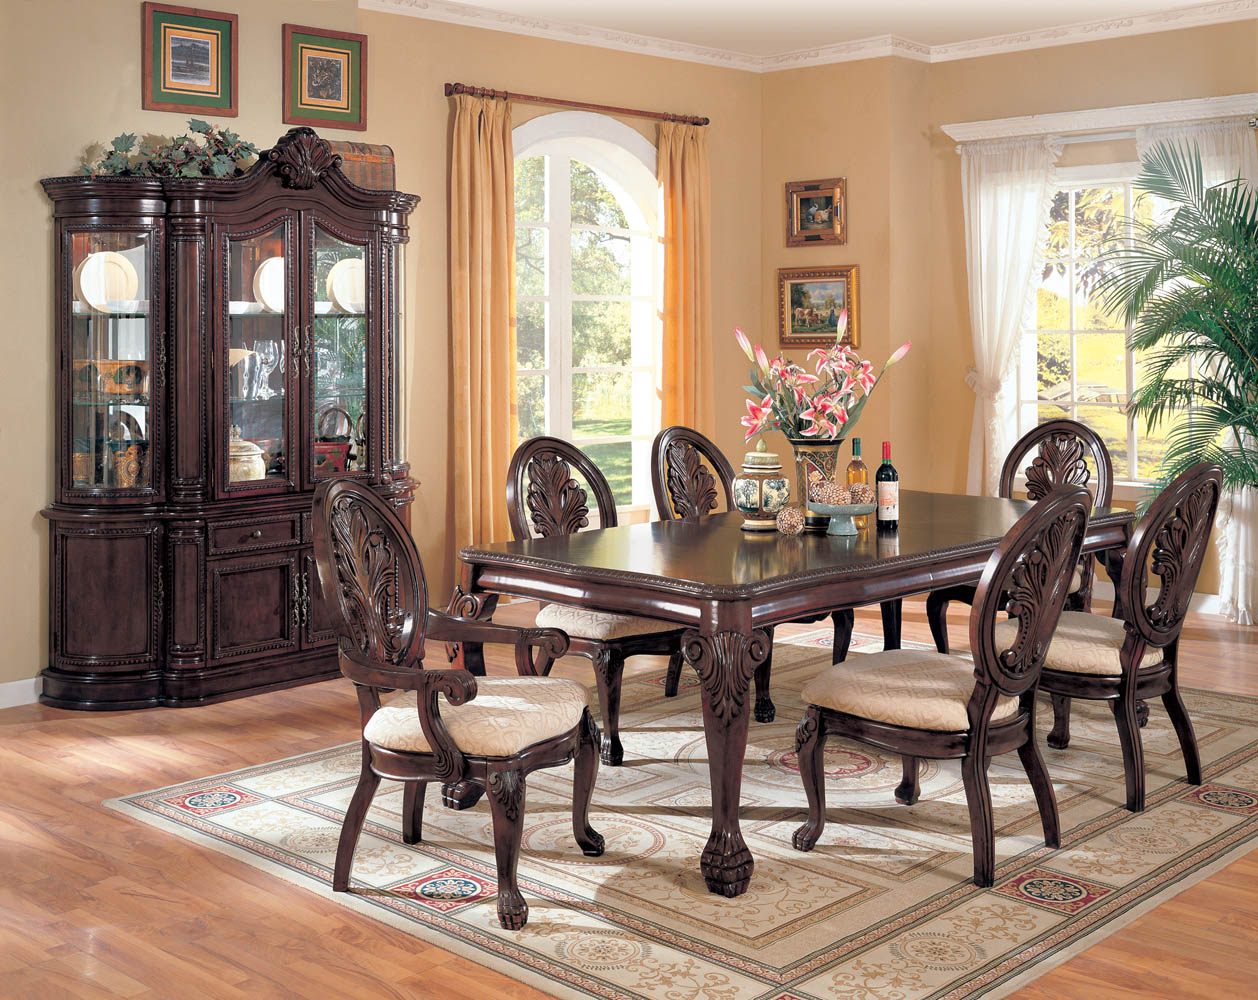 Cherry Master Dinning Room Table Set